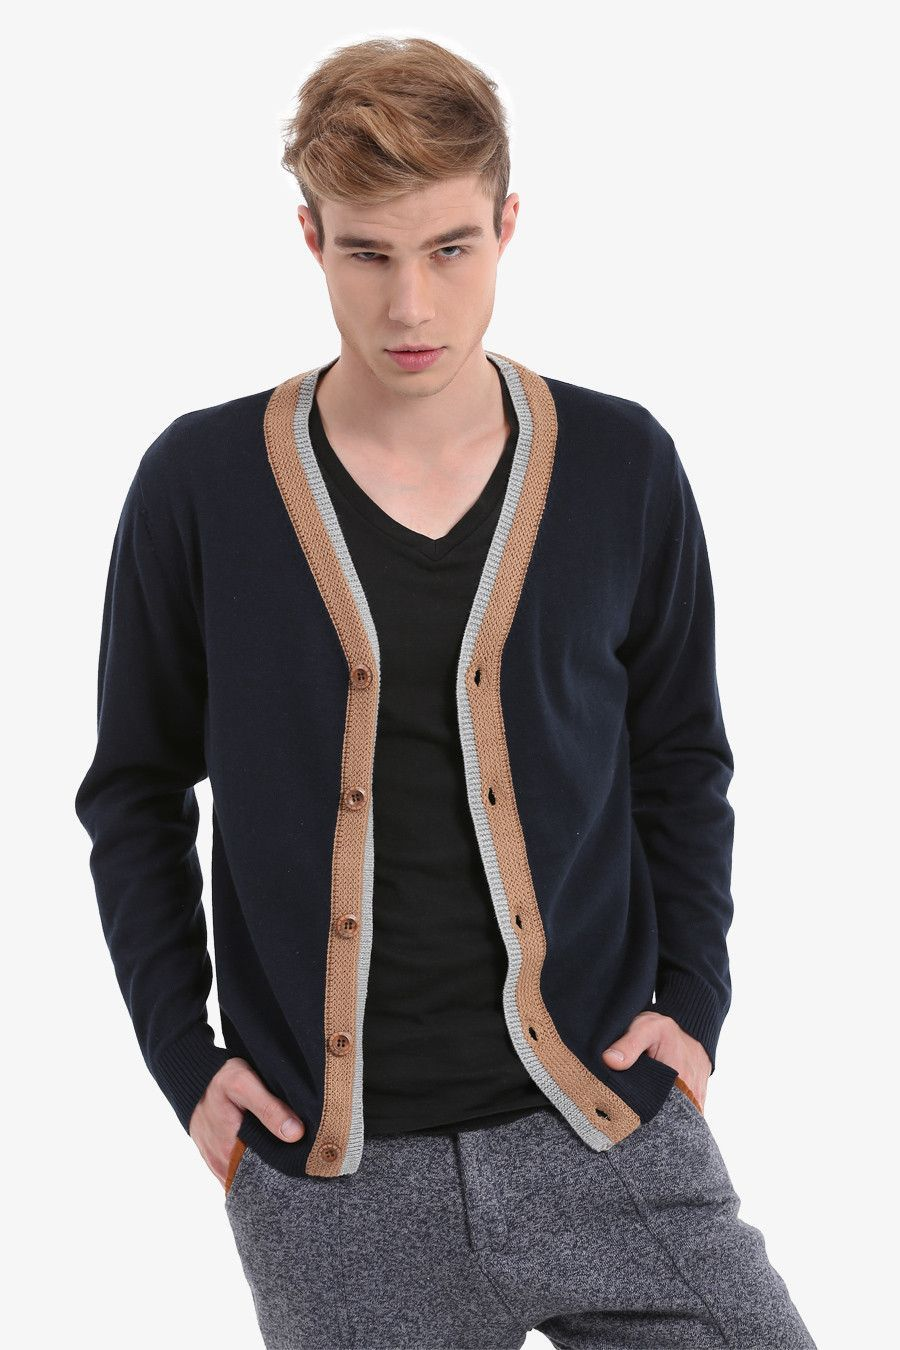 Men's Navy Button Up Cardigan | Classic, Retro look and Sleeve